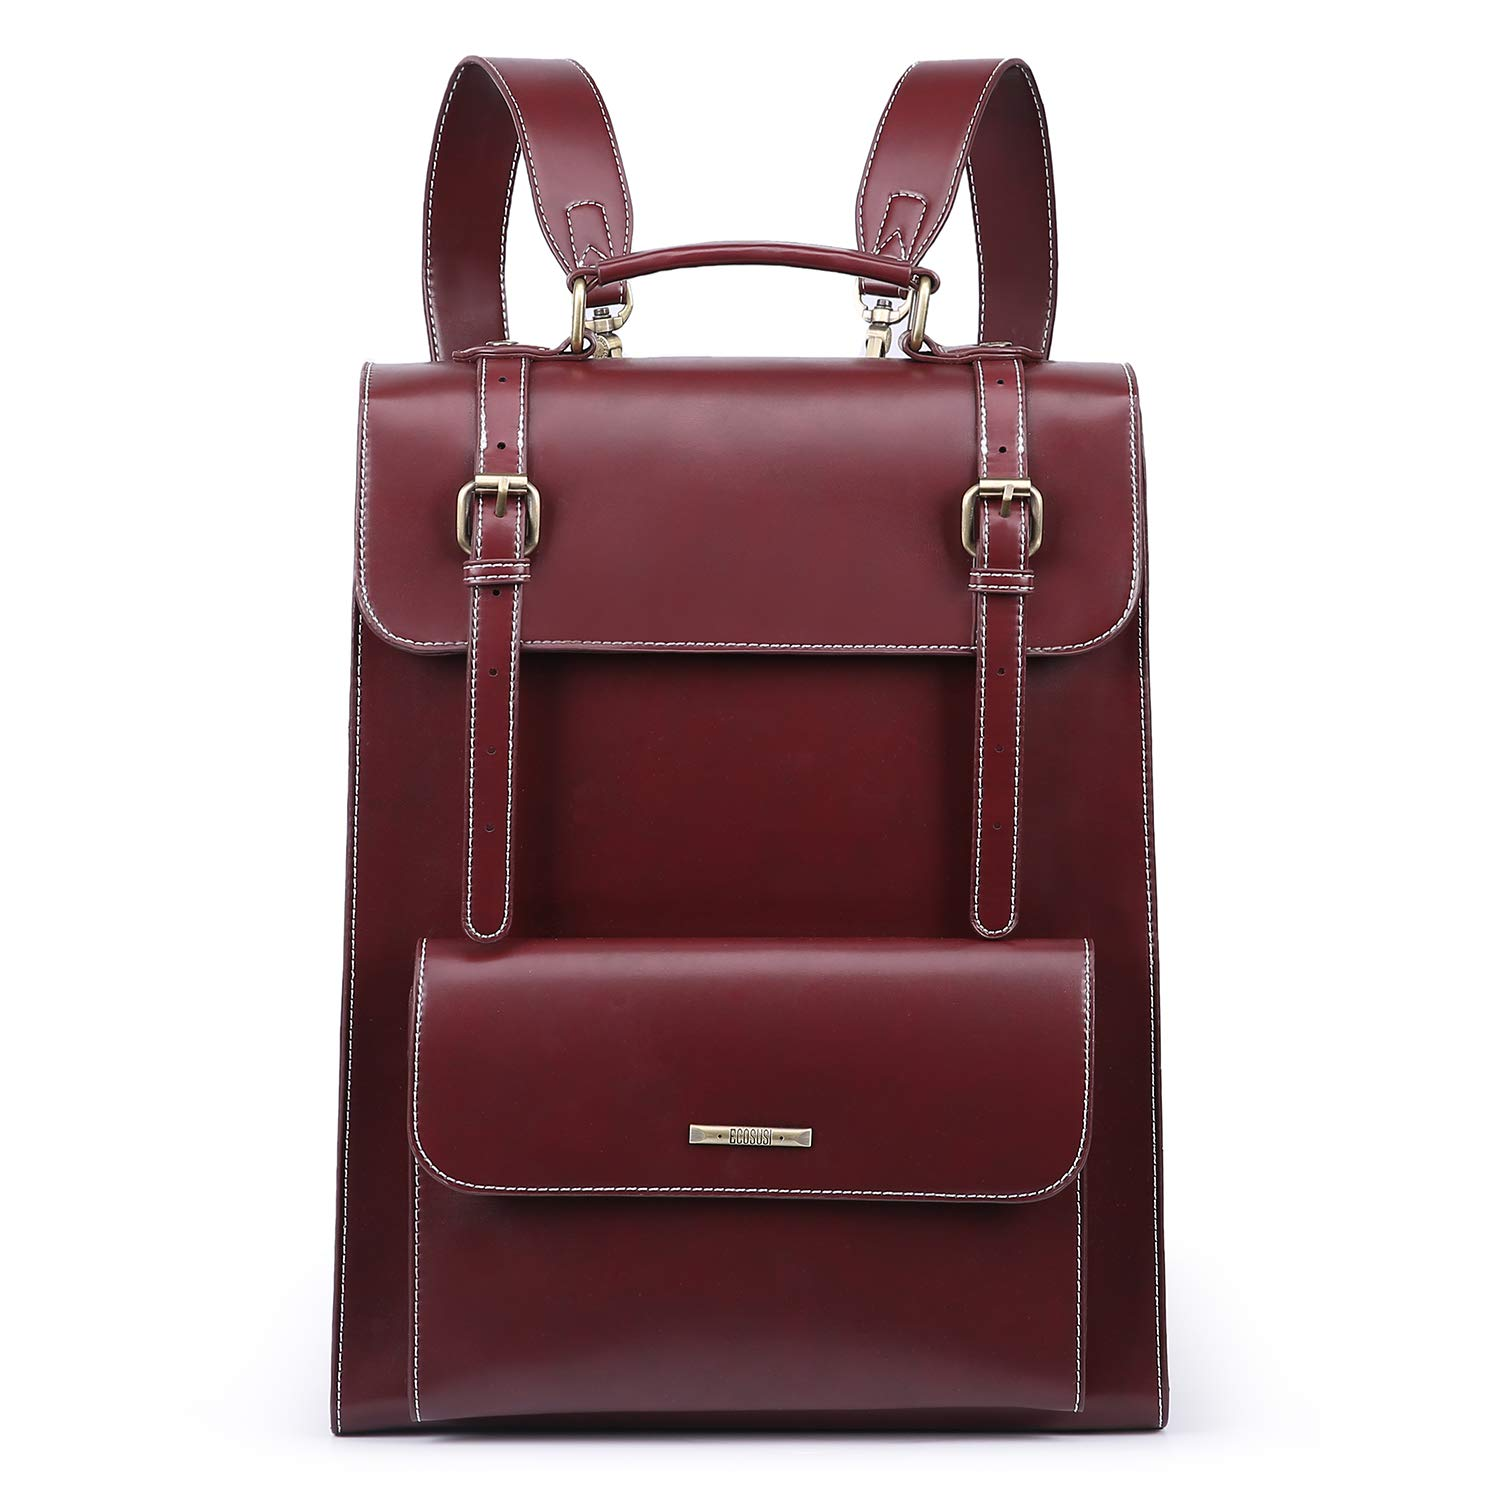 ECOSUSI Laptop Backpack for Women PU Leather Backpack Vintage for Laptop 15.6 inches School Bag College Bookbag, Bordeaux